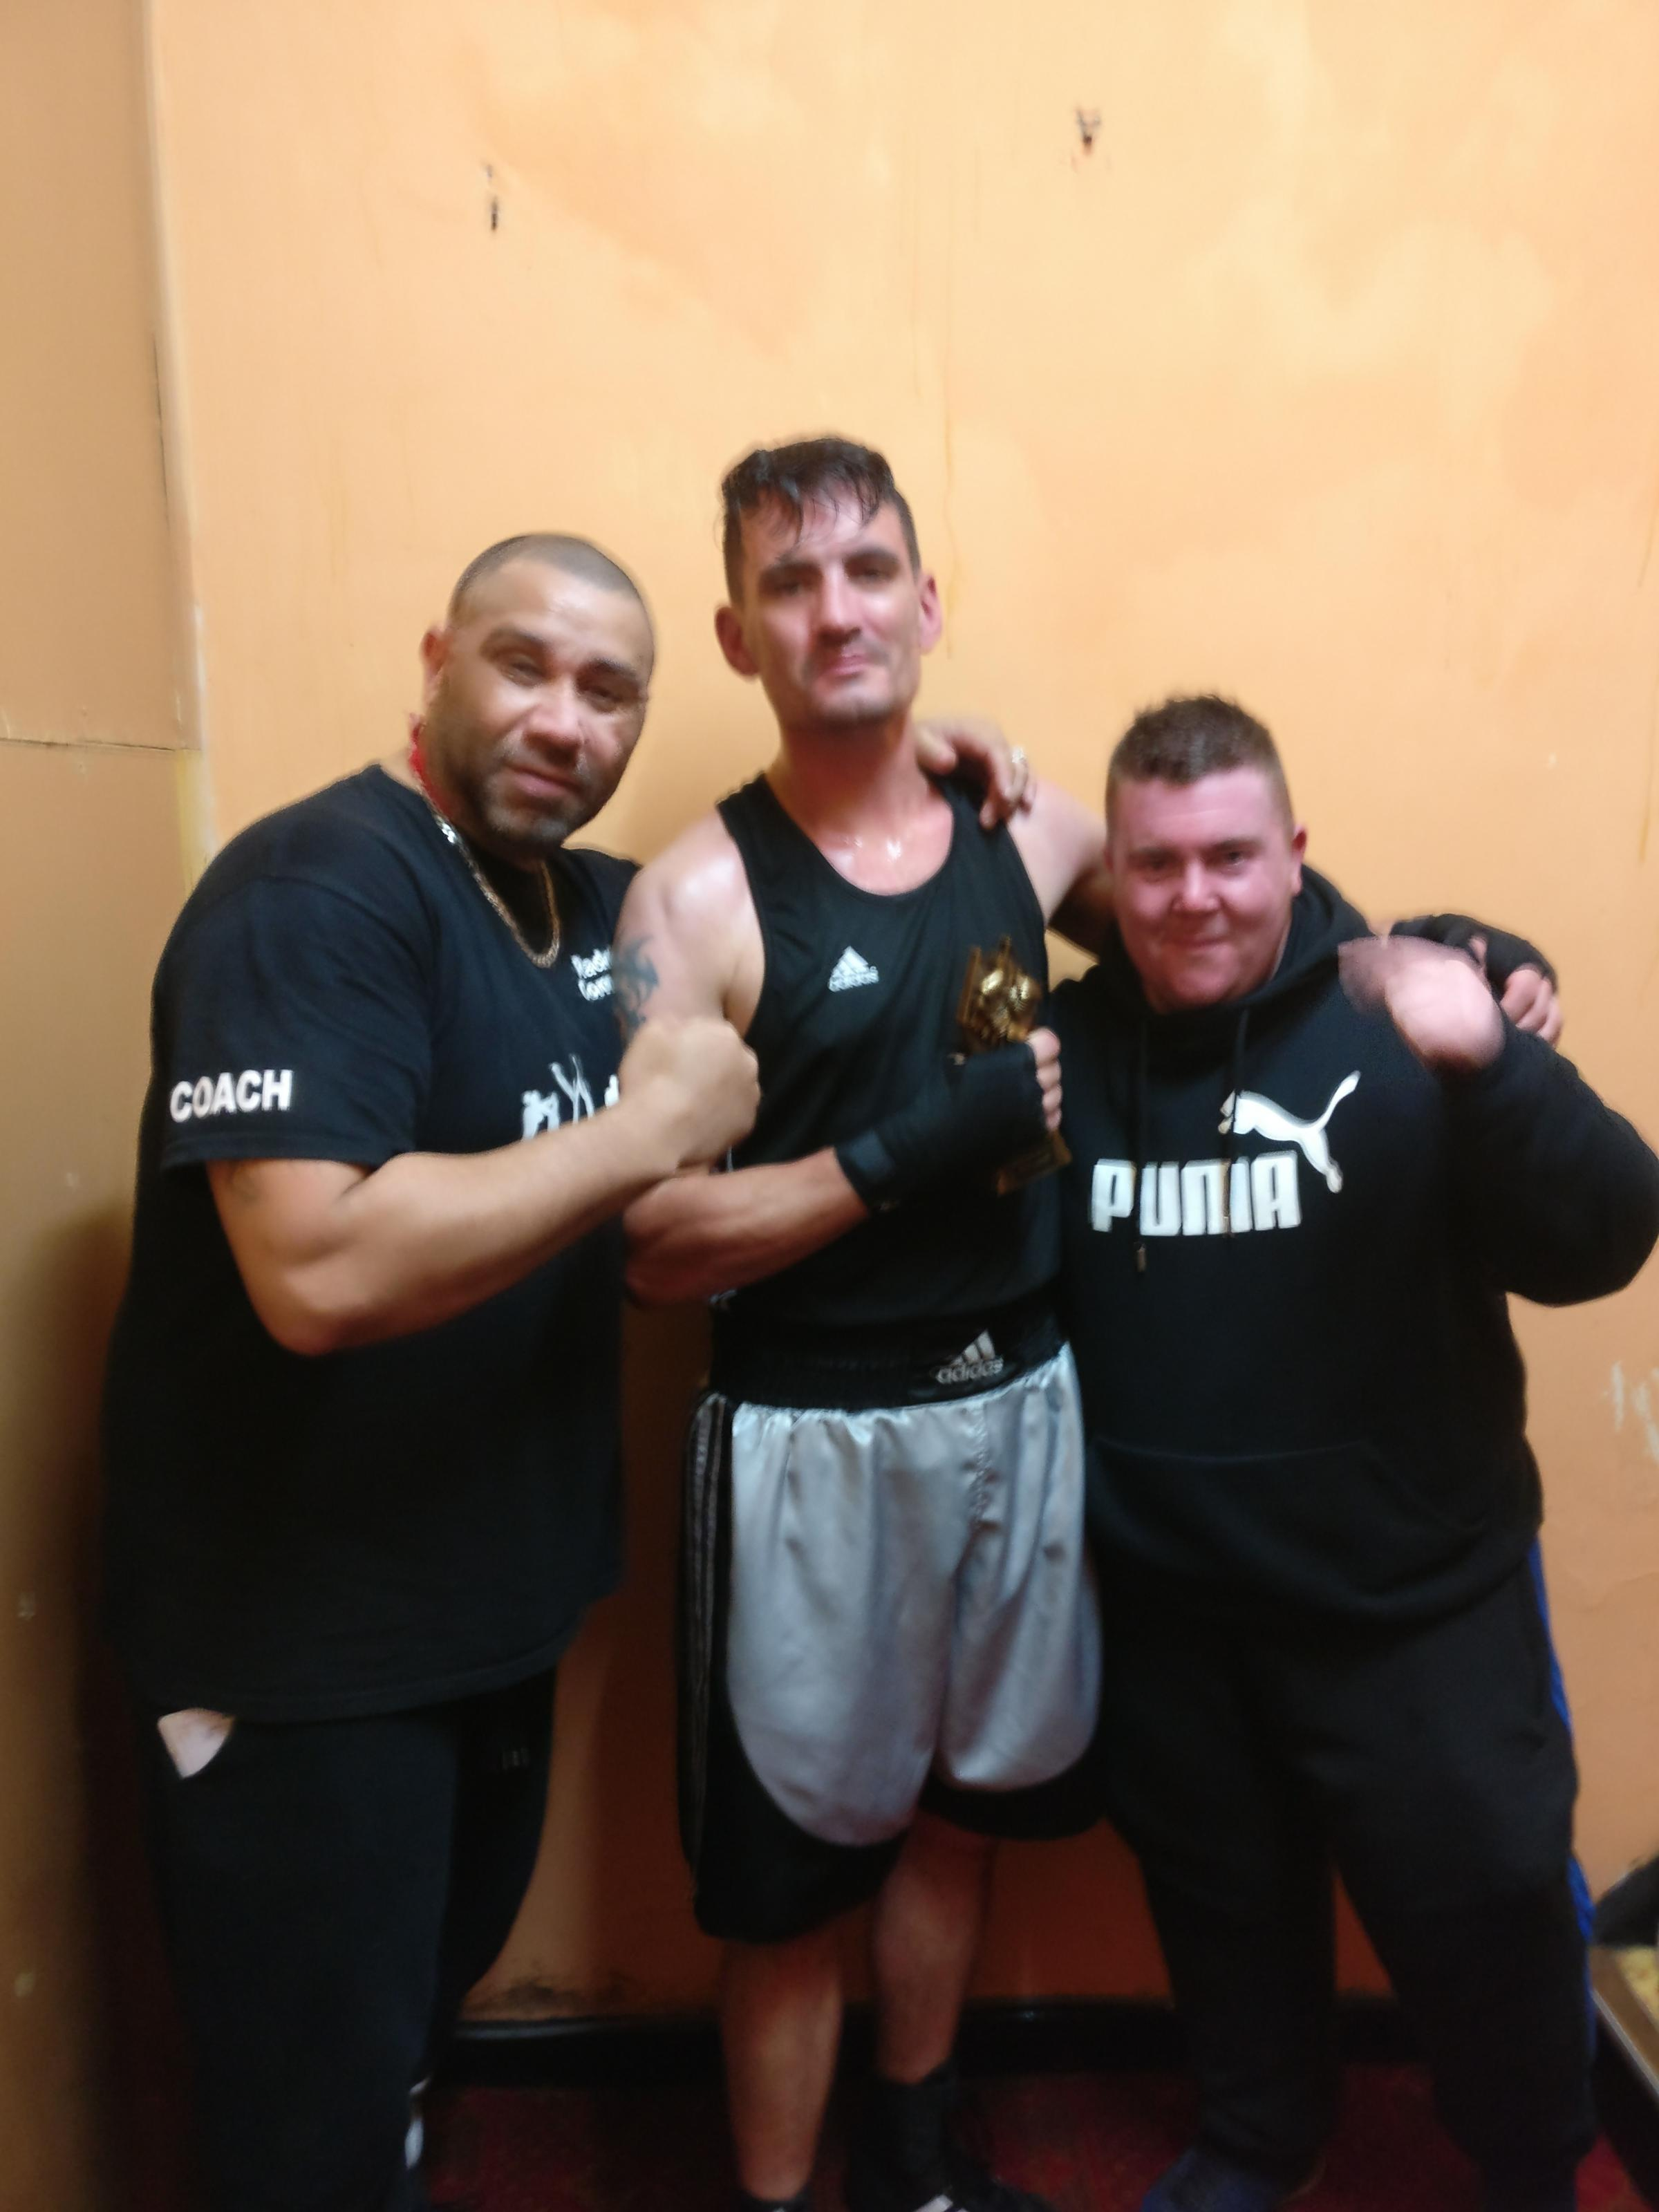 BOXING CLEVER: Coach Barry Smart, fighter Neil Nighton and coach Patrick McElherron